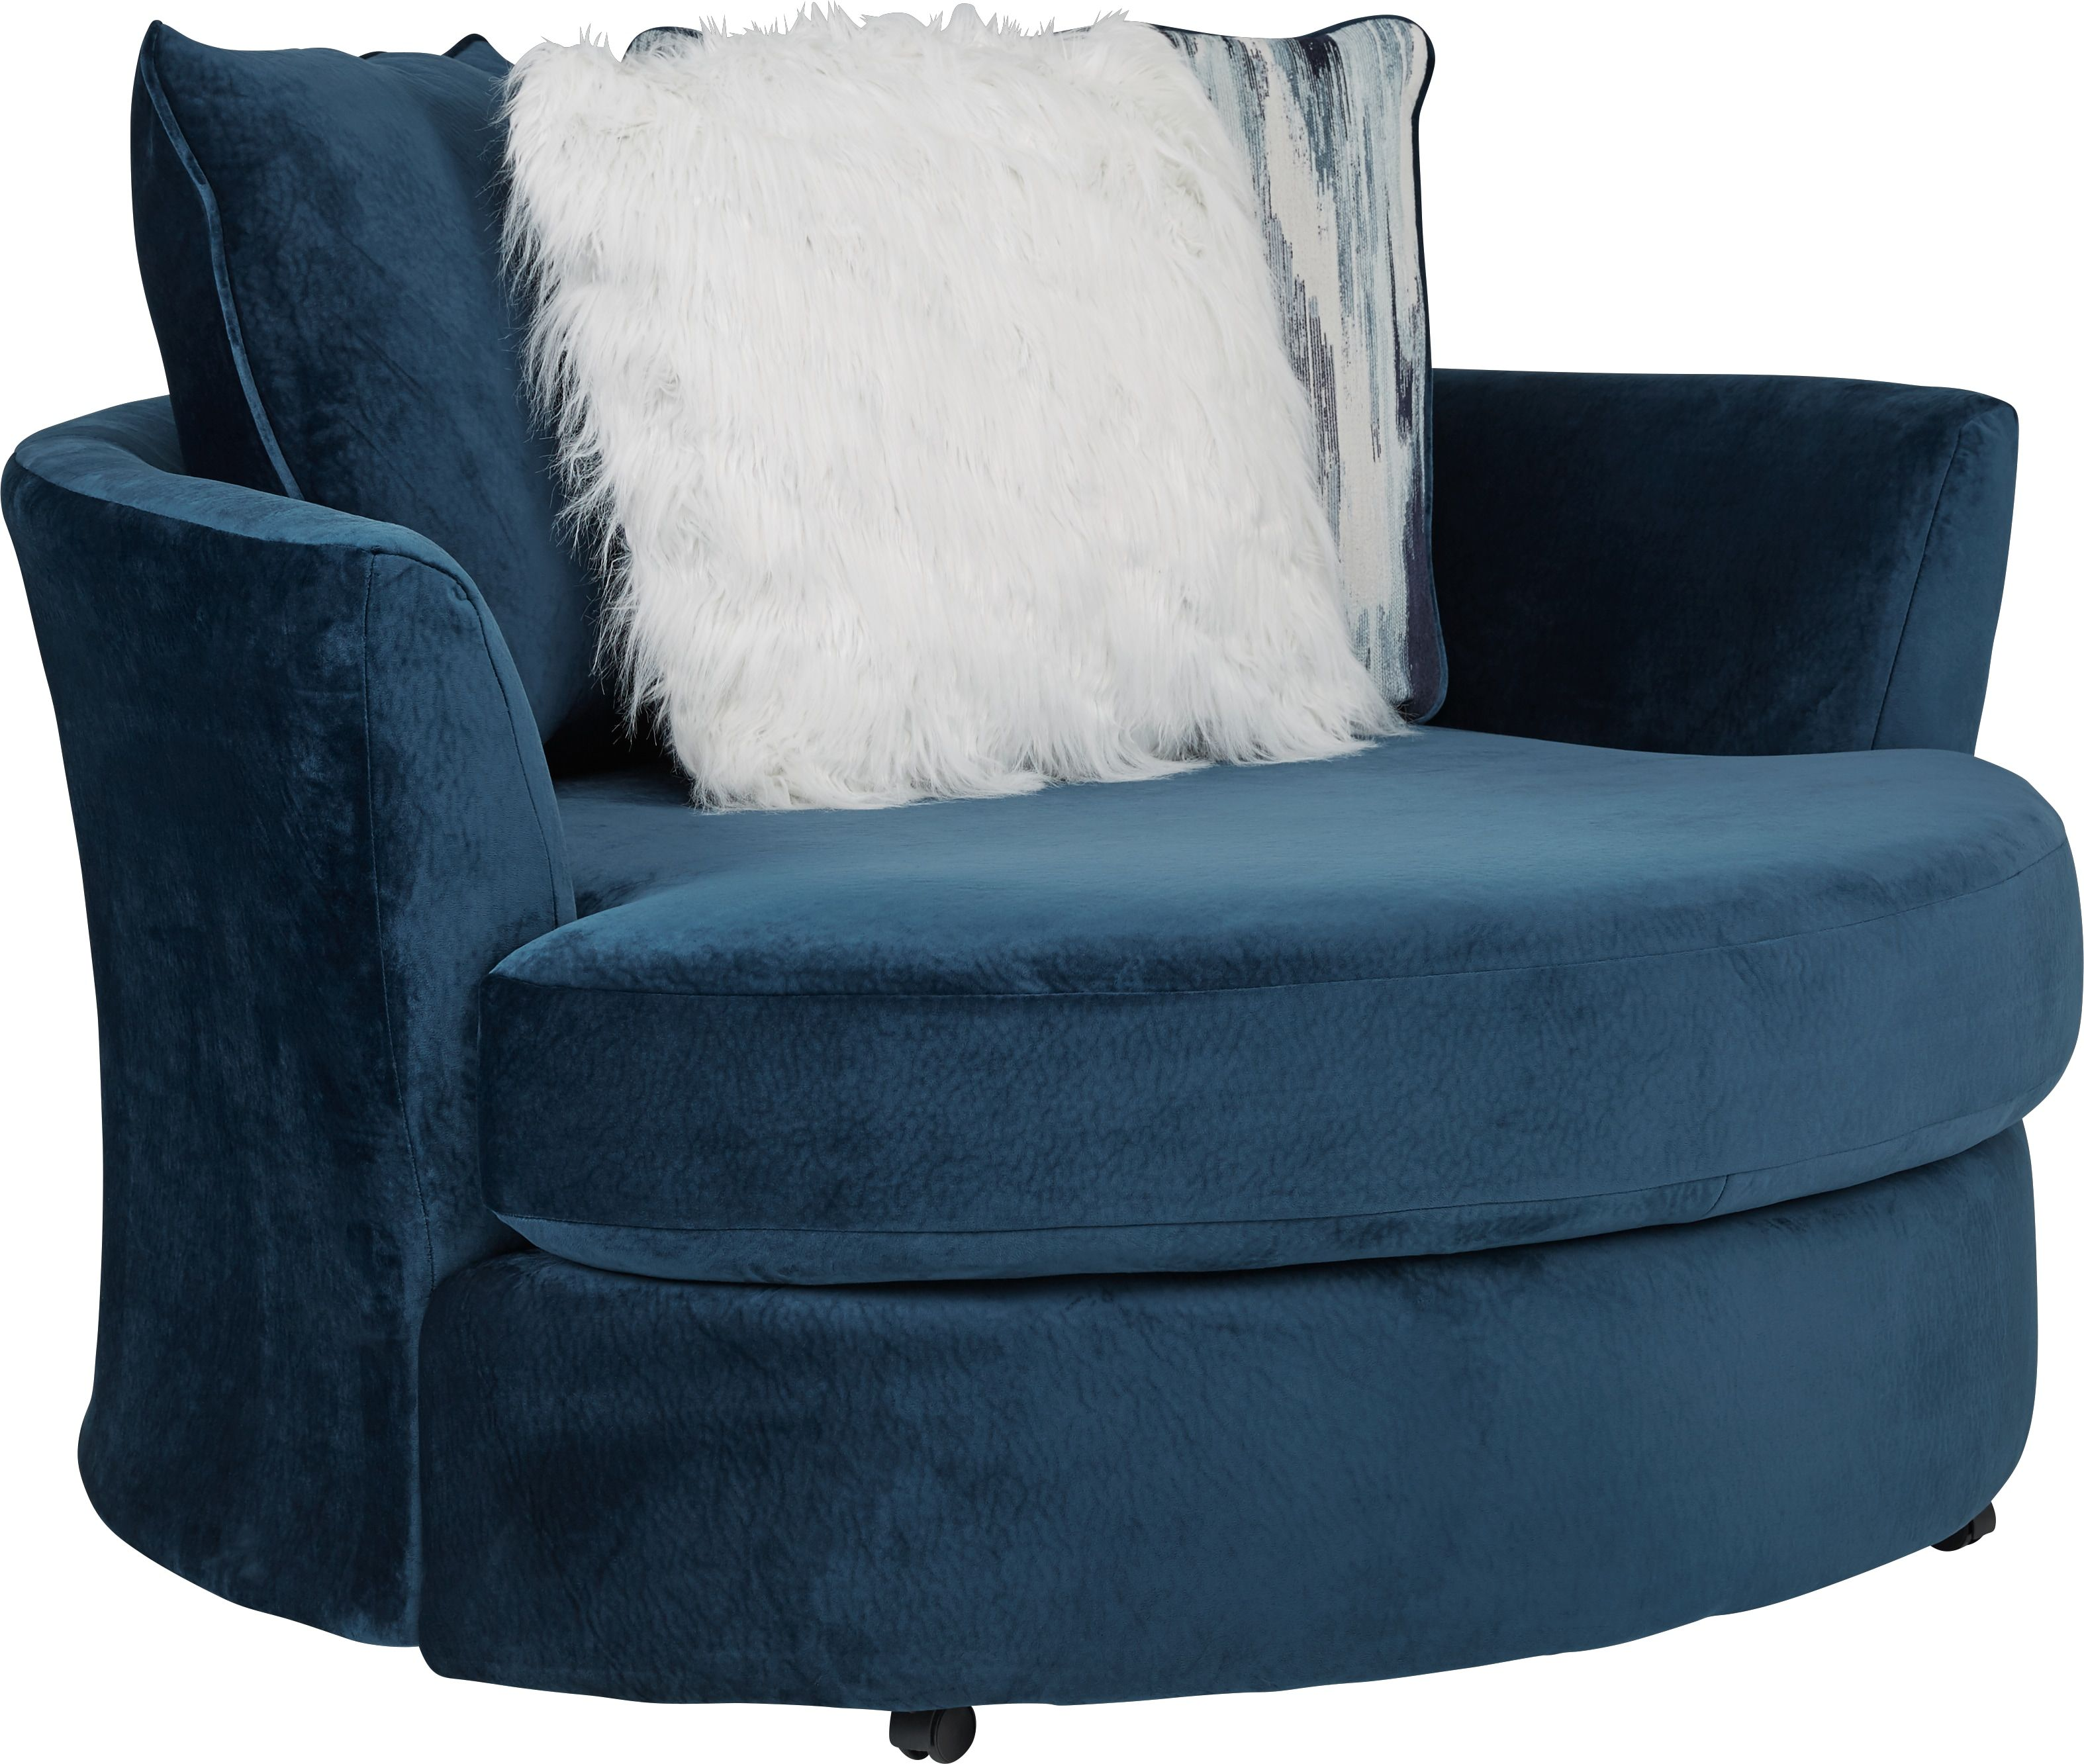 Remarkable Dharma Place Blue Swivel Chair In 2019 Chair Swivel Chair Unemploymentrelief Wooden Chair Designs For Living Room Unemploymentrelieforg